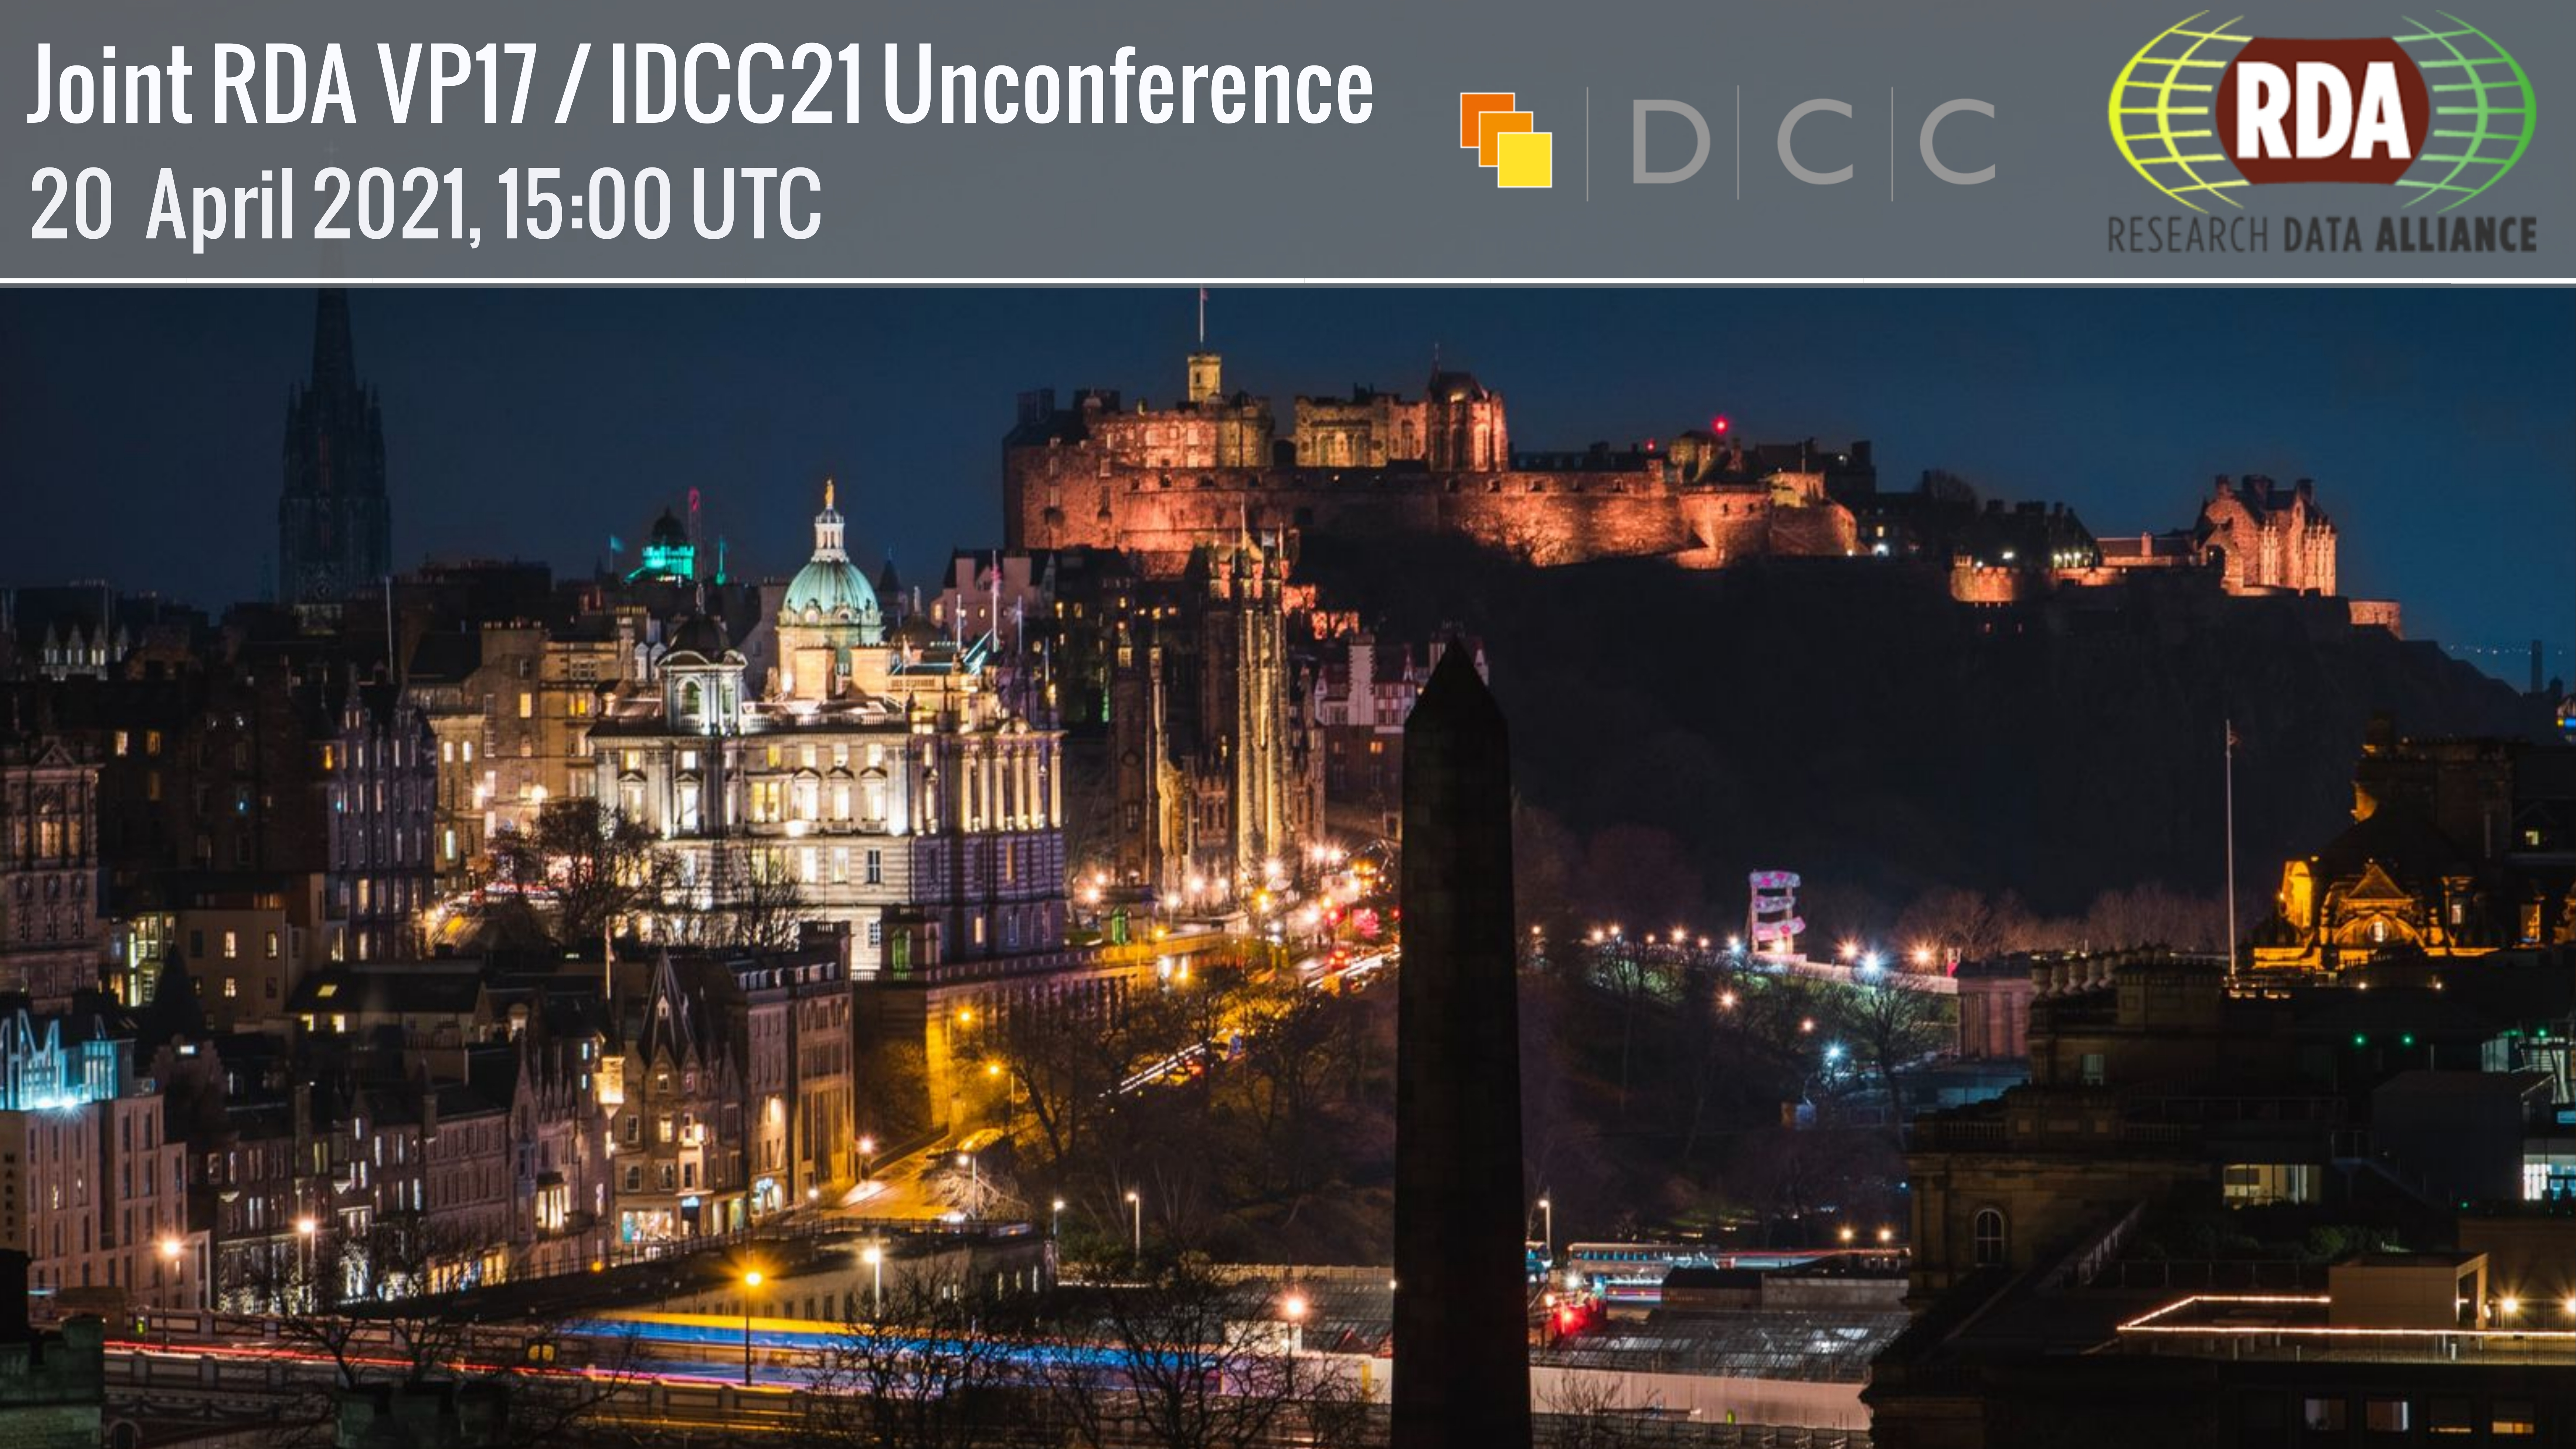 Joint RDA VP17 | IDCC21 Unconference